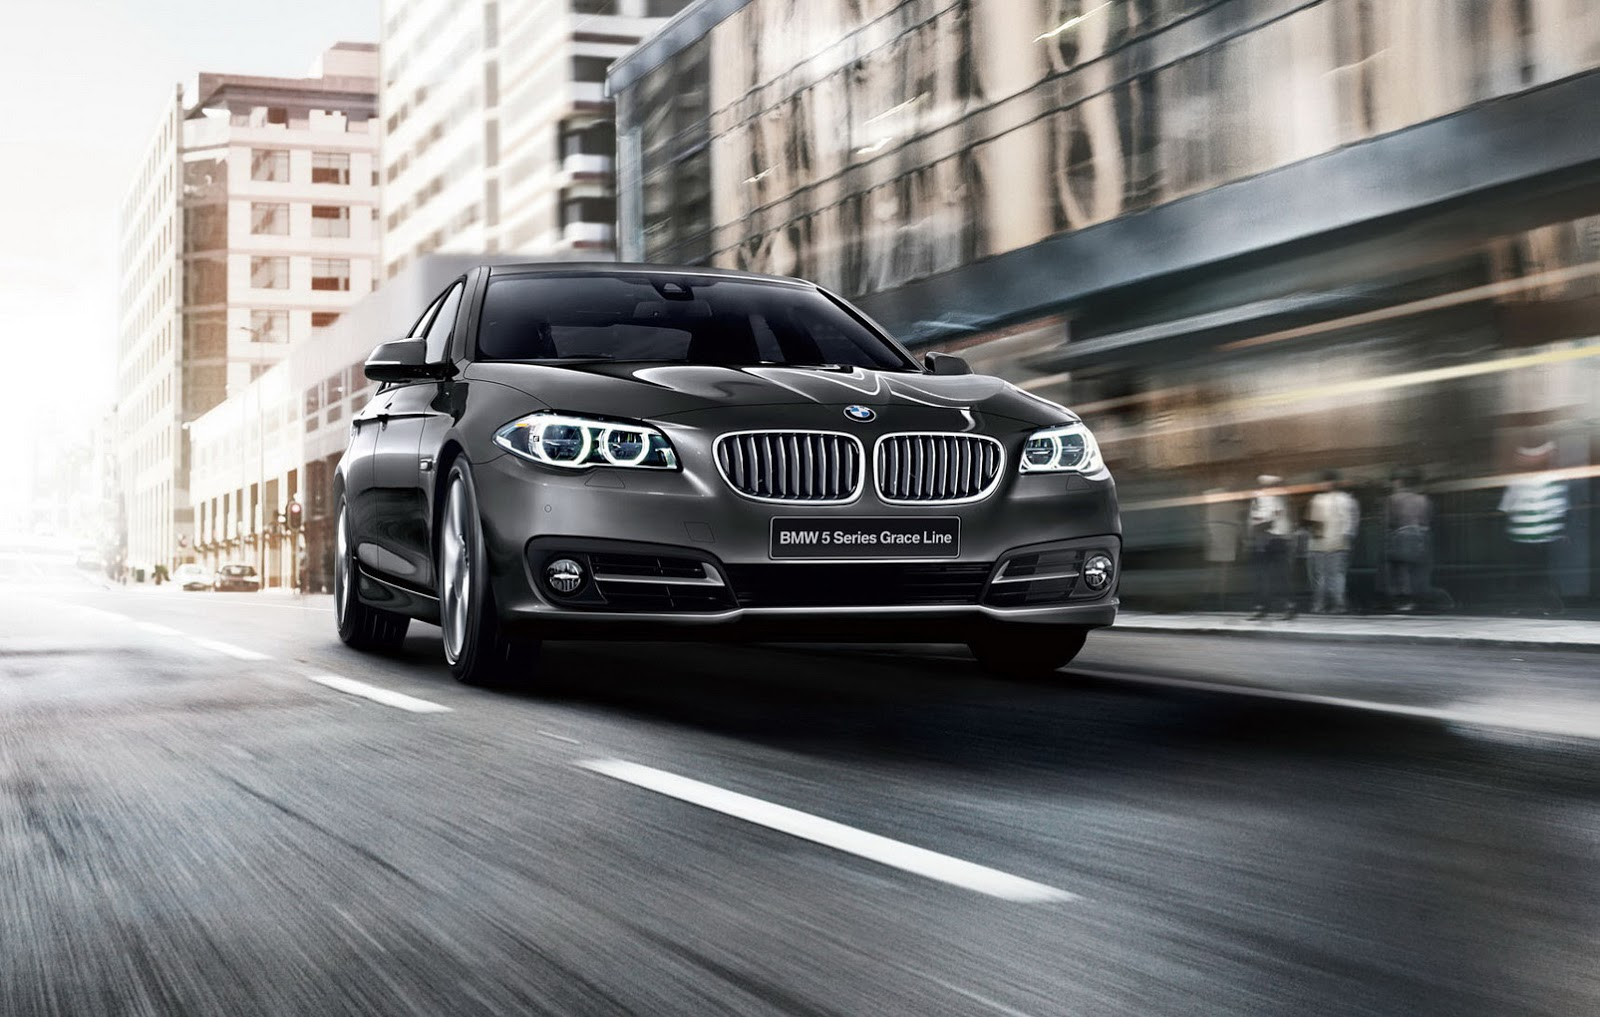 Bmw Graces Japan With A Special Edition 5 Series Featuring